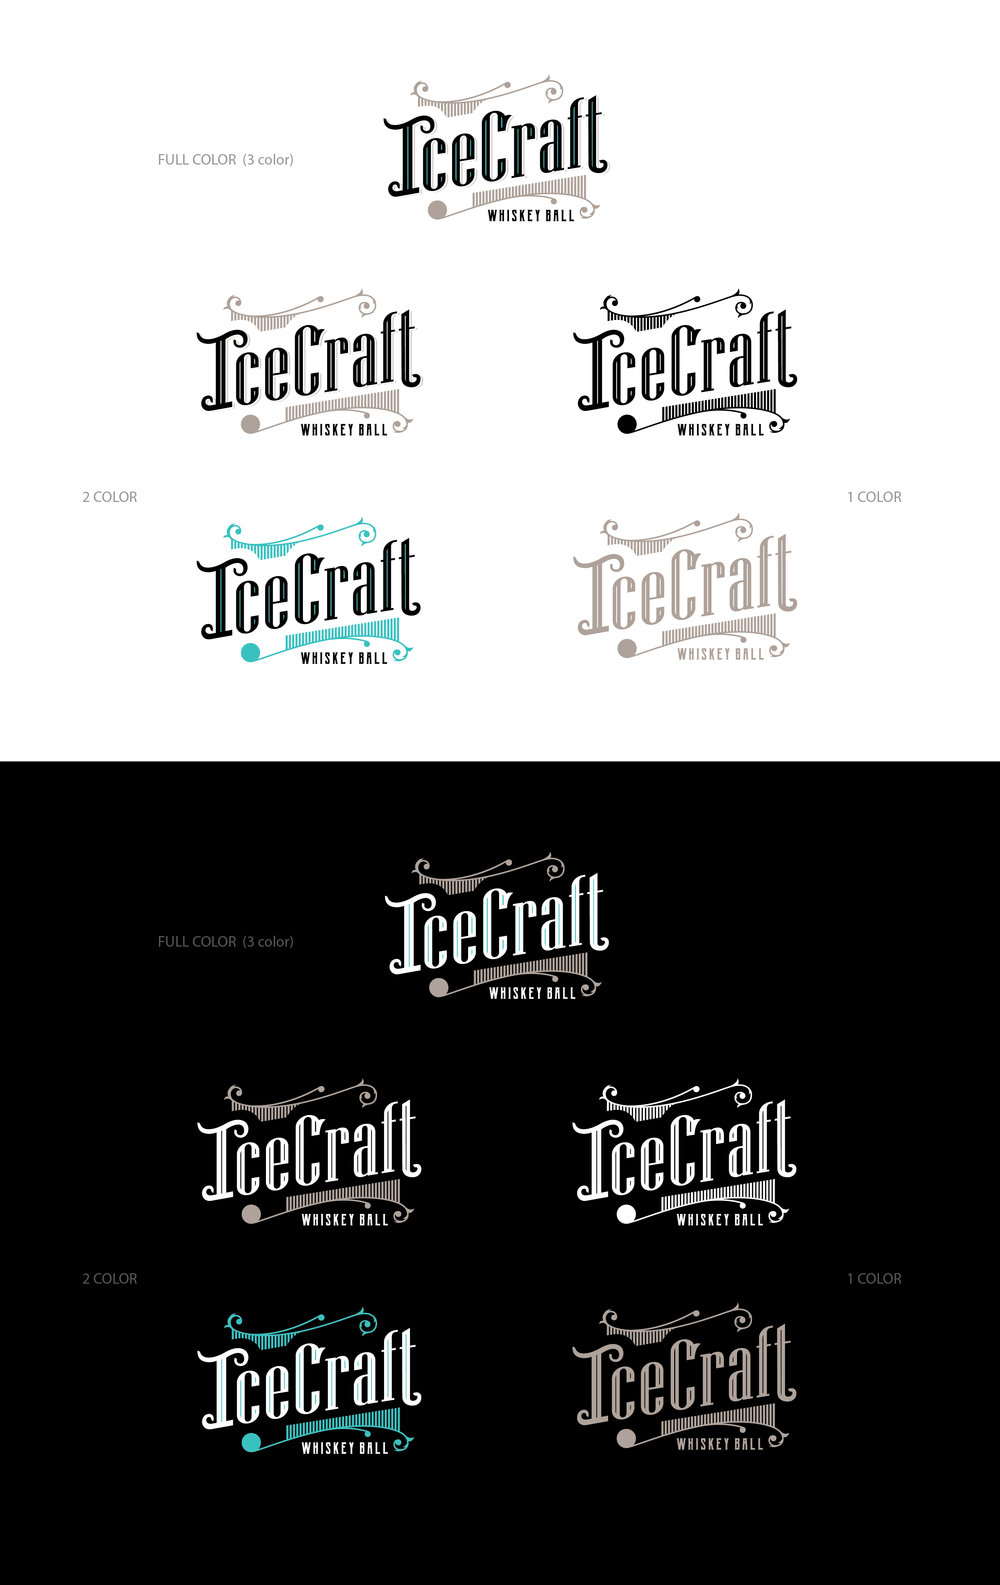 whiskey-ball-logo-design-by-jordan-fretz-desgin-18-01.jpg